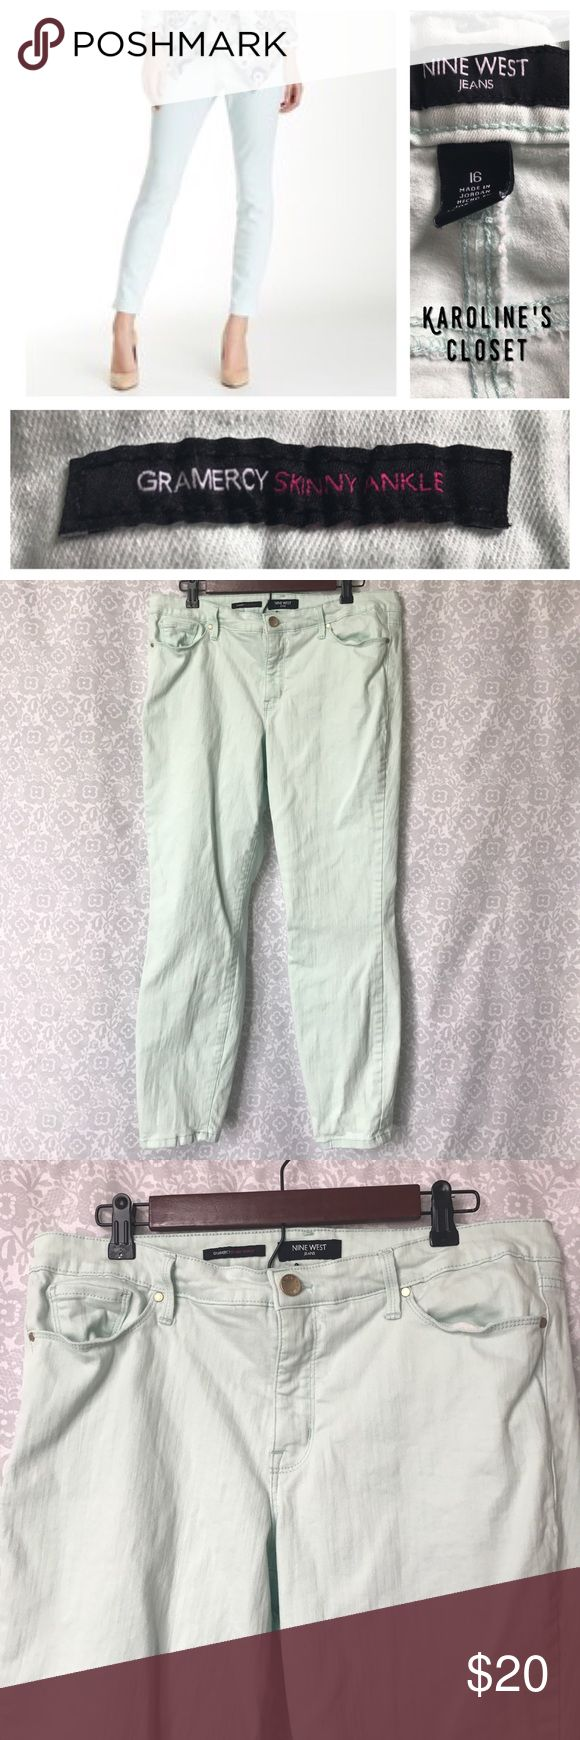 "Nine West Gramercy Skinny Ankle Mint Green Jeans Nine West, Gramercy Skinny Ankle jeans in size 16, Mint Green color, 26"" inseam, and in excellent condition!! Nine West Jeans Skinny"